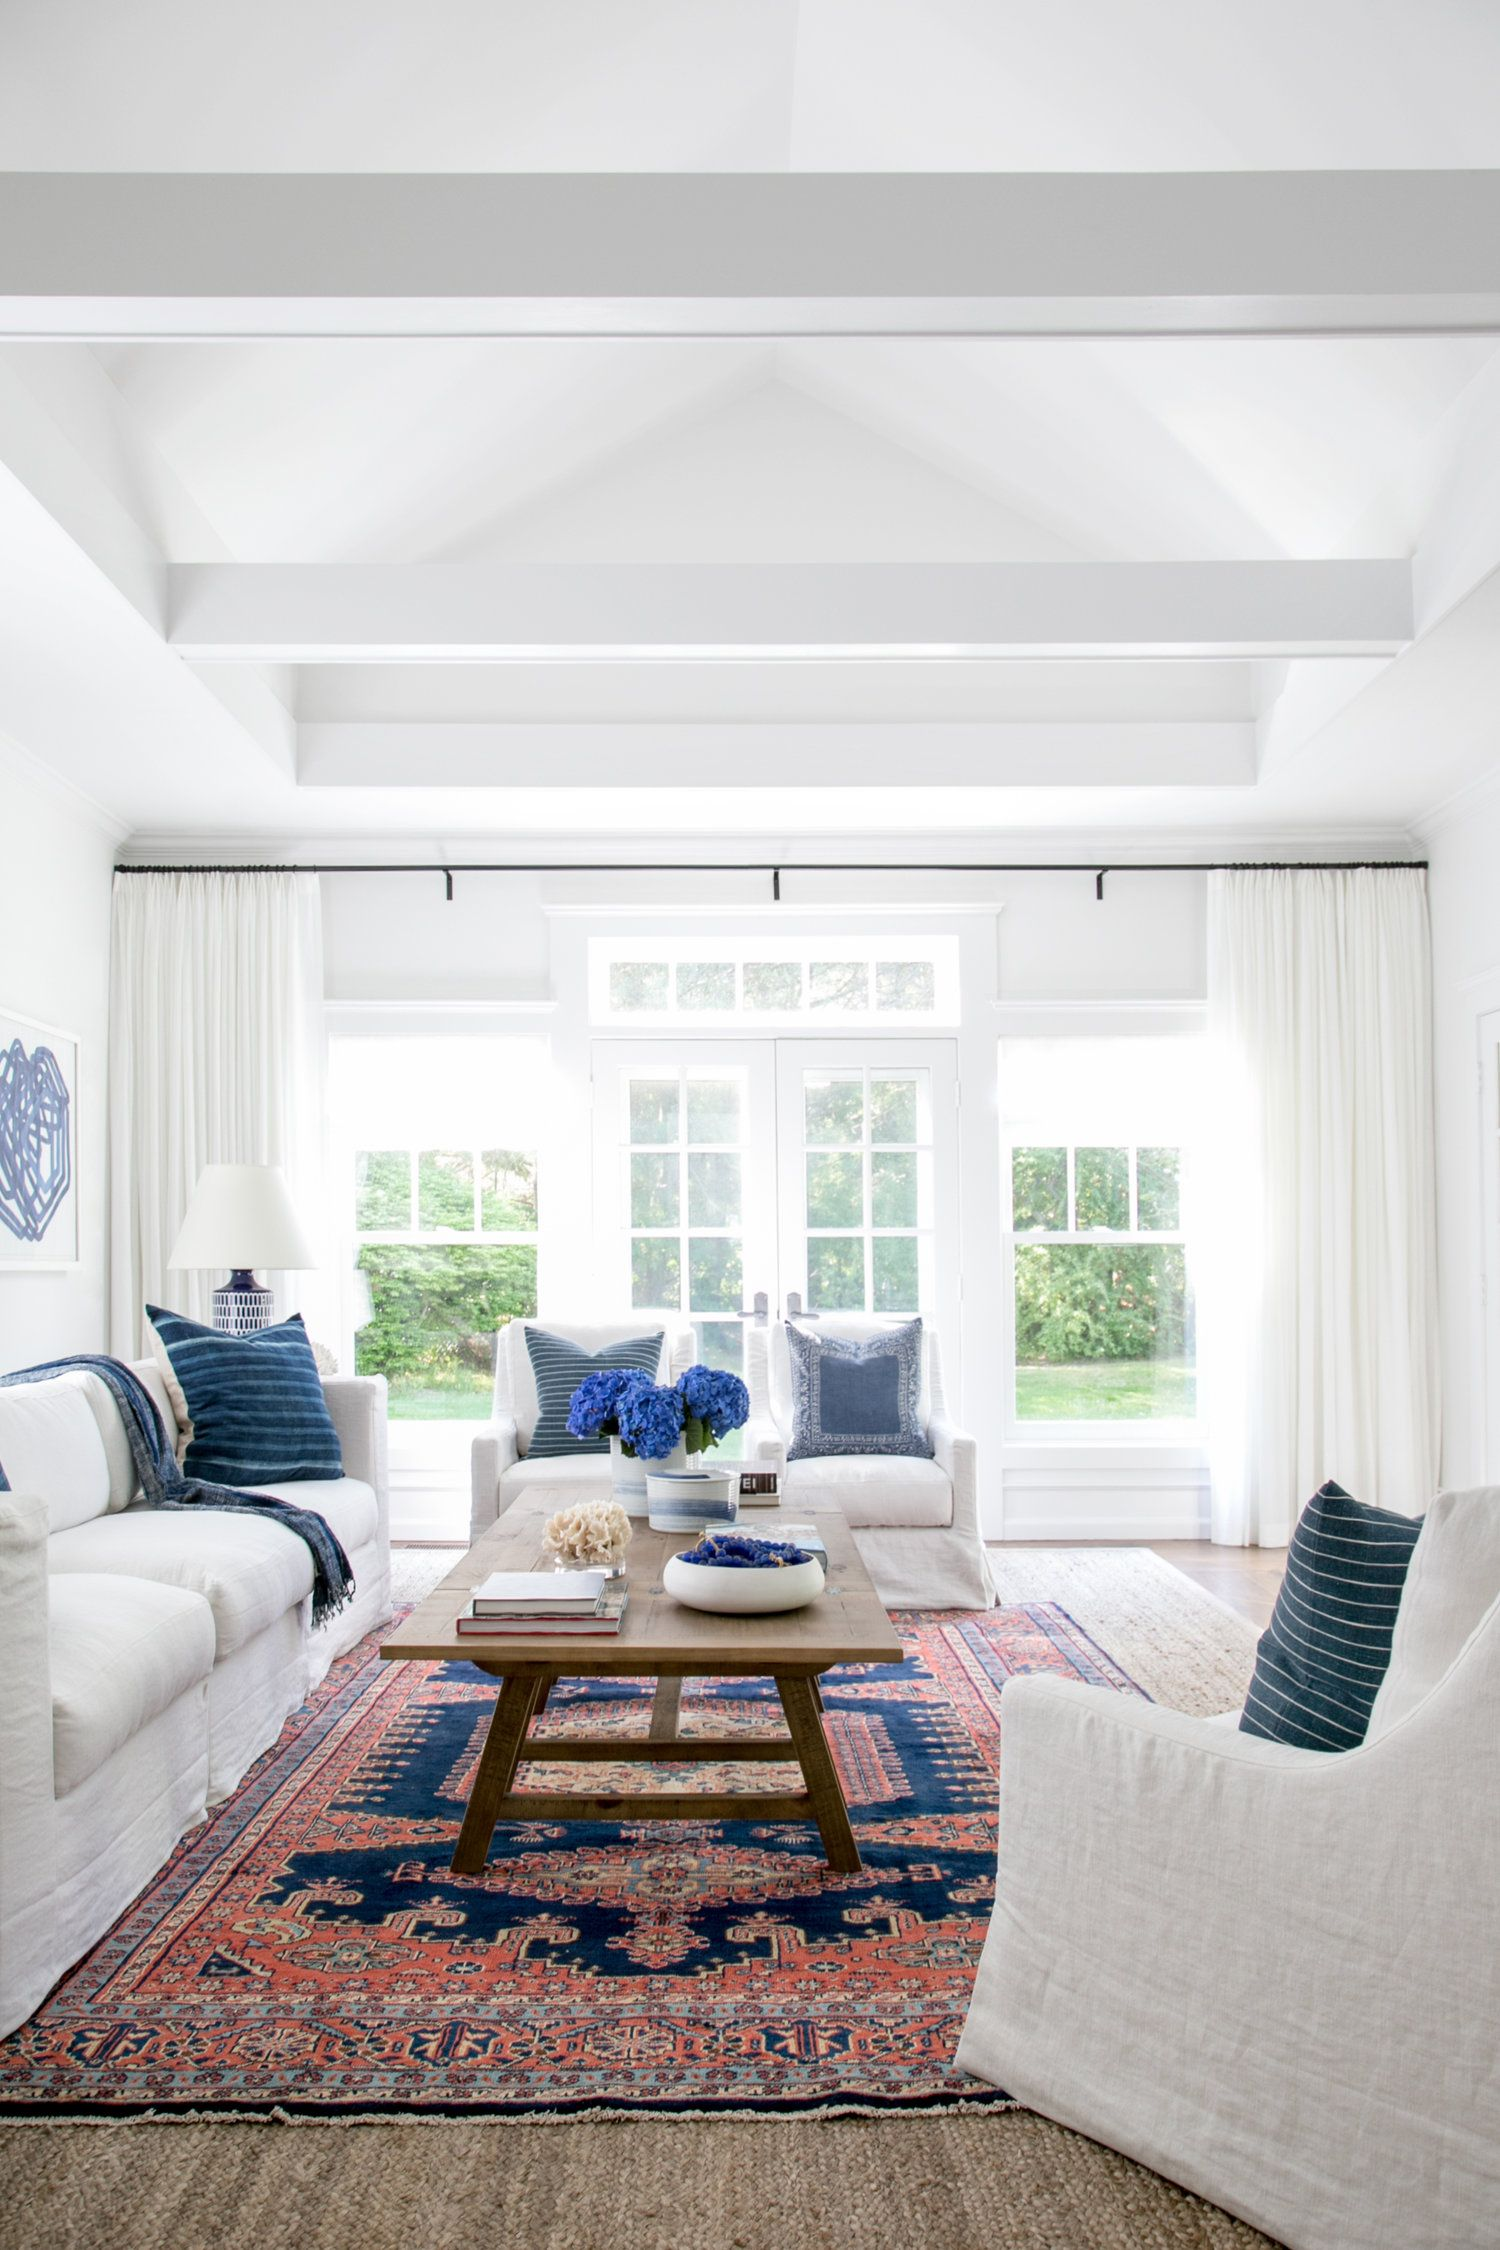 Drawn to the blue and orange rug with neural sofas 03 - Chango & Co ...